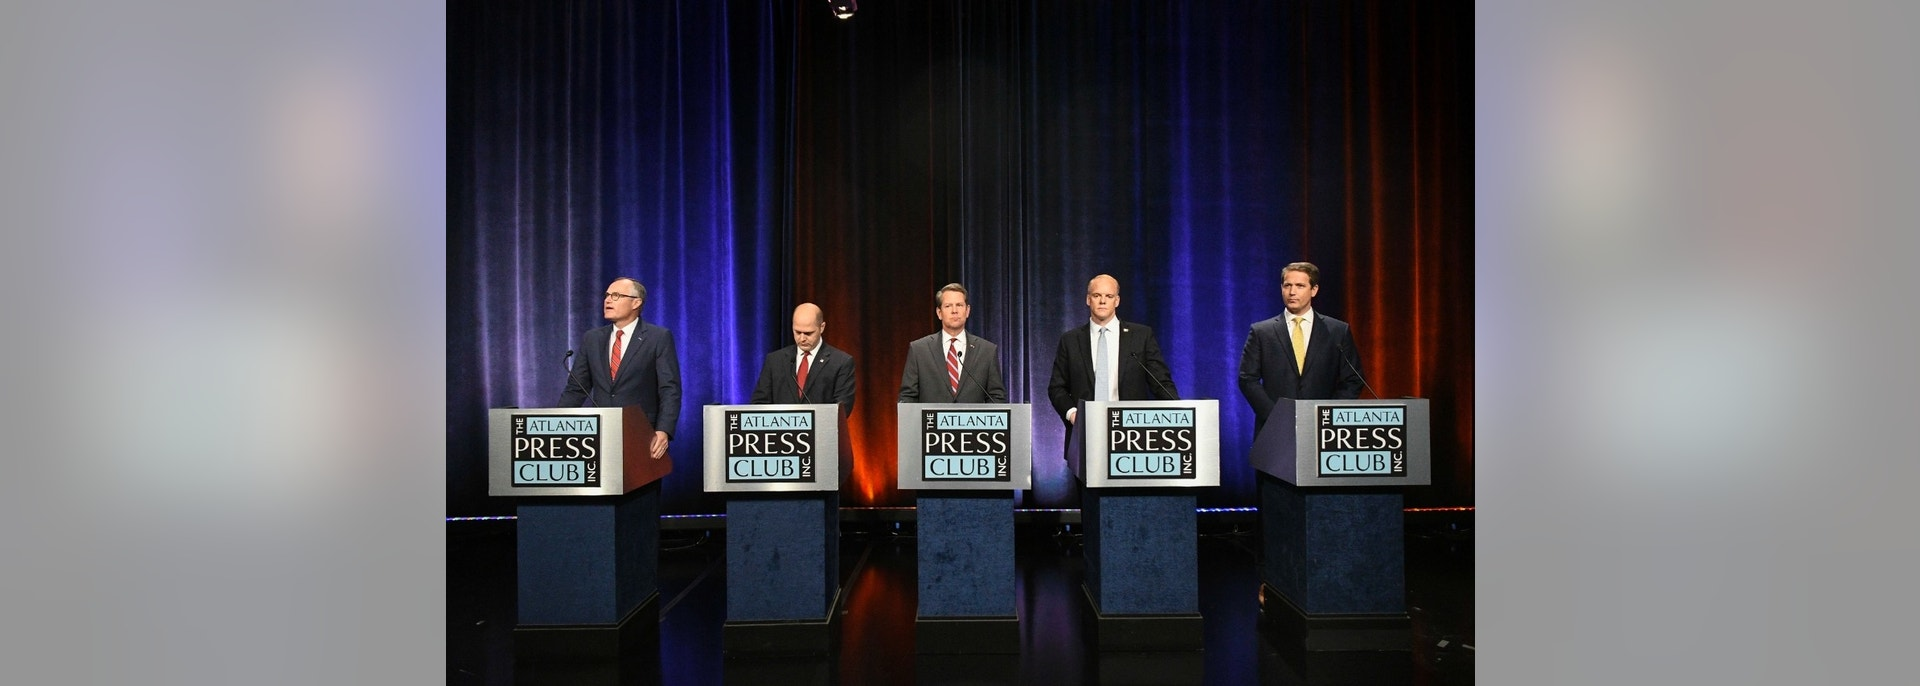 CORRECTS TO SAY THAT CANDIDATES ARE WAITING FOR DEBATE TO START, INSTEAD OF ALREADY PARTICIPATING - Georgia Republican gubernatorial candidates, from left to right, Casey Cagle, Hunter Hill, Brian Kemp, Clay Tippins and Michael Williams wait for their debate to begin, Thursday, May 17, 2018, in Atlanta. (AP Photo/John Amis)